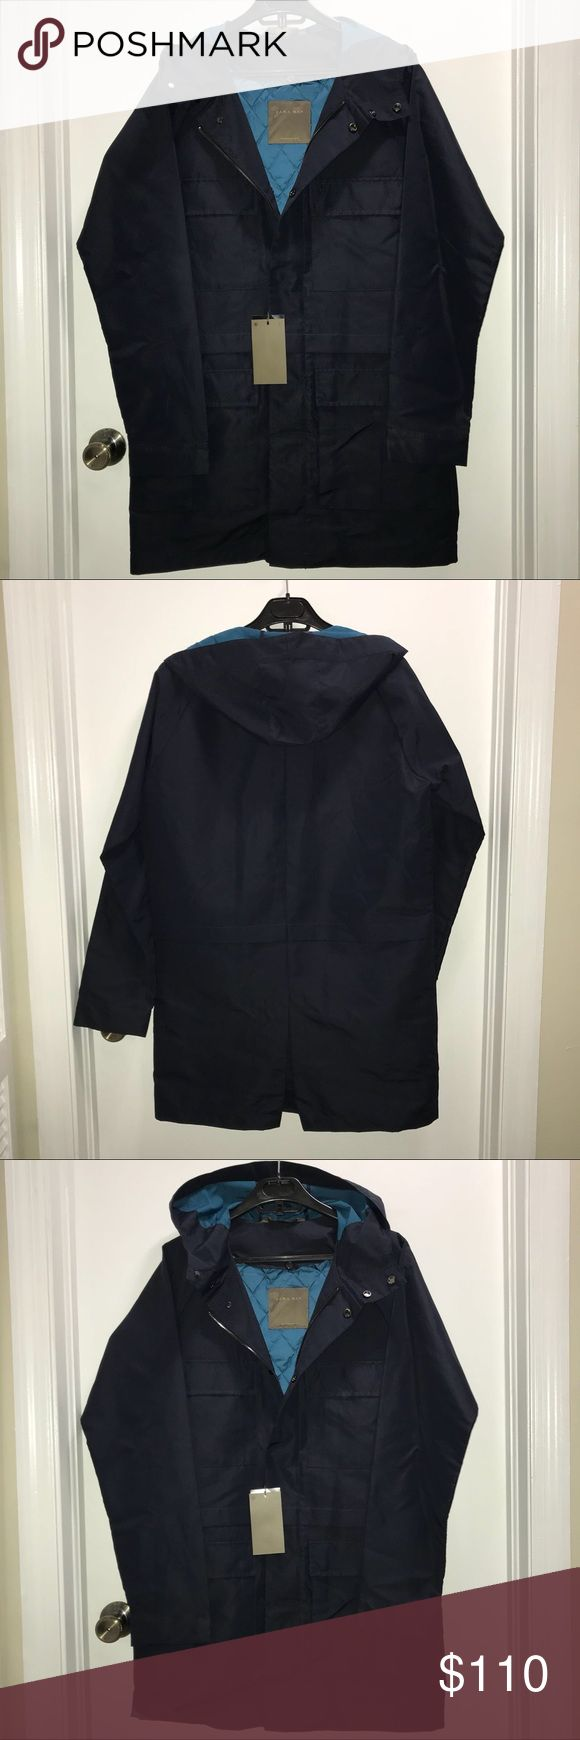 Zara Men's Raincoat Parka Zara Man  Fashion raincoat parka jacket poncho trench   Water repellant with hood and removable quilted lining  Size Medium  NWT   Check out my other items ! I ship same or next day📬 Thanks for looking ! Zara Jackets & Coats Raincoats